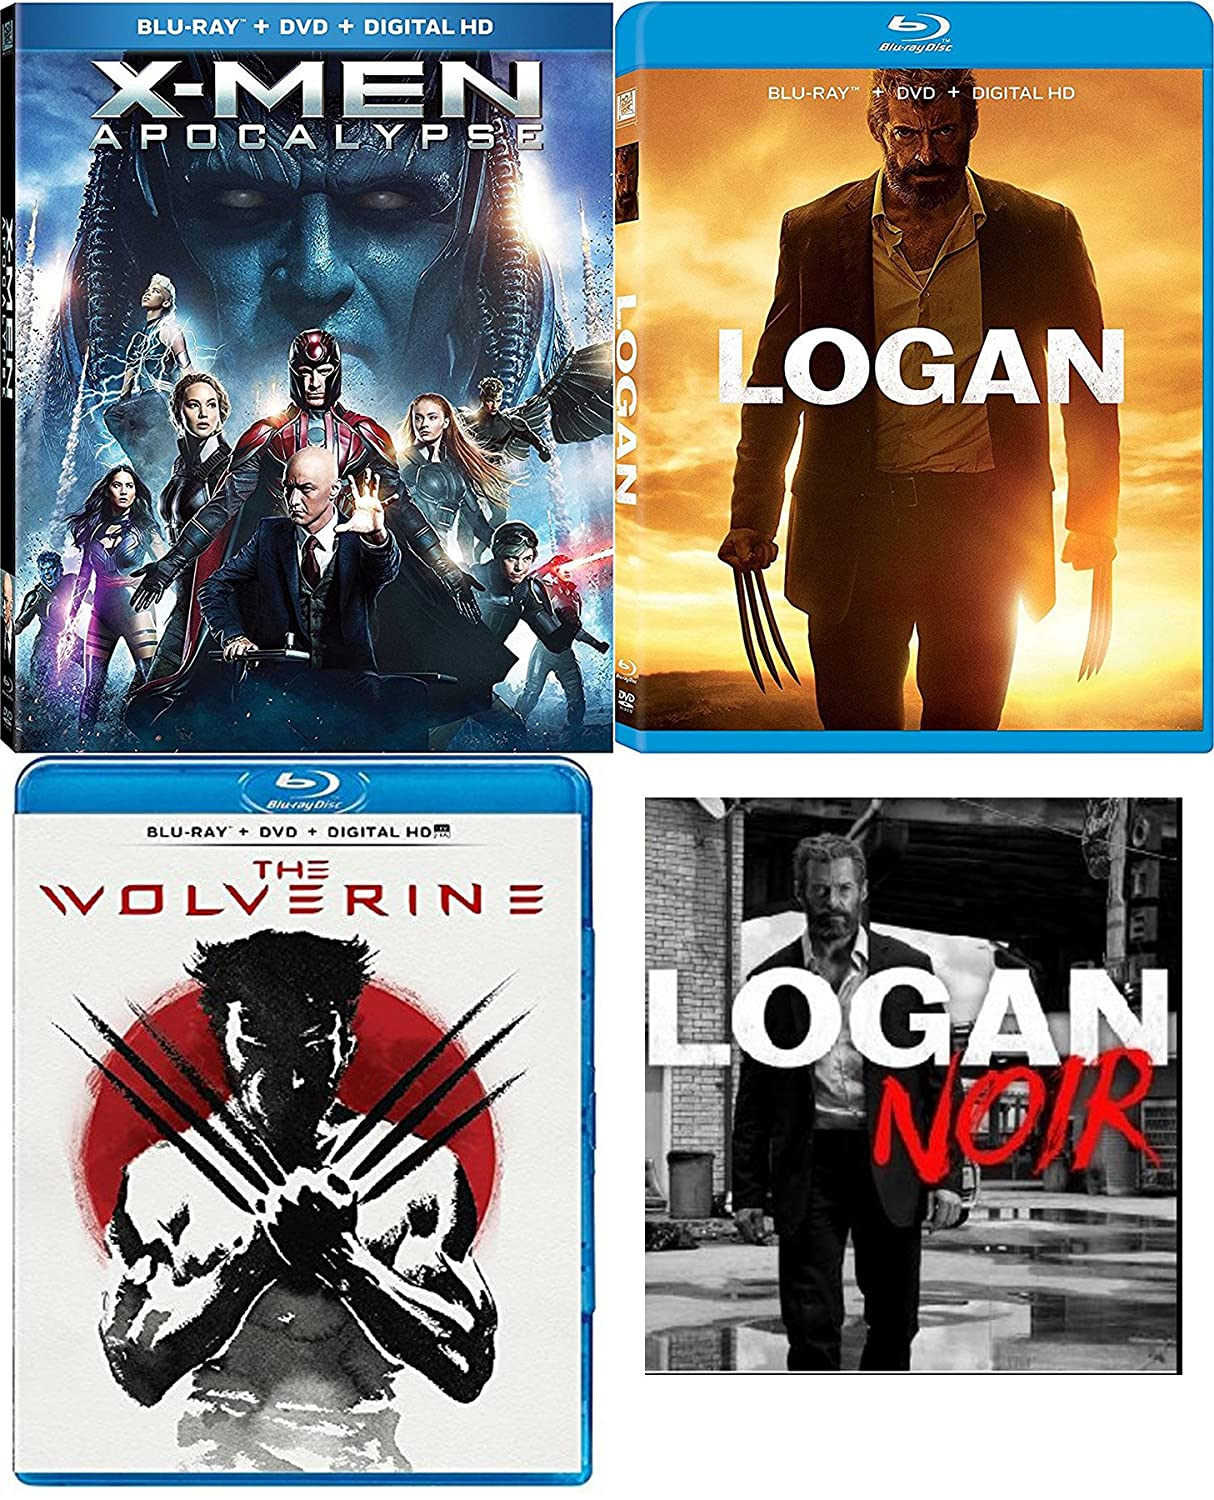 Noir Logan Special Edition 3 Disc Movie Pack Blu-Ray + DVD + DHD ...